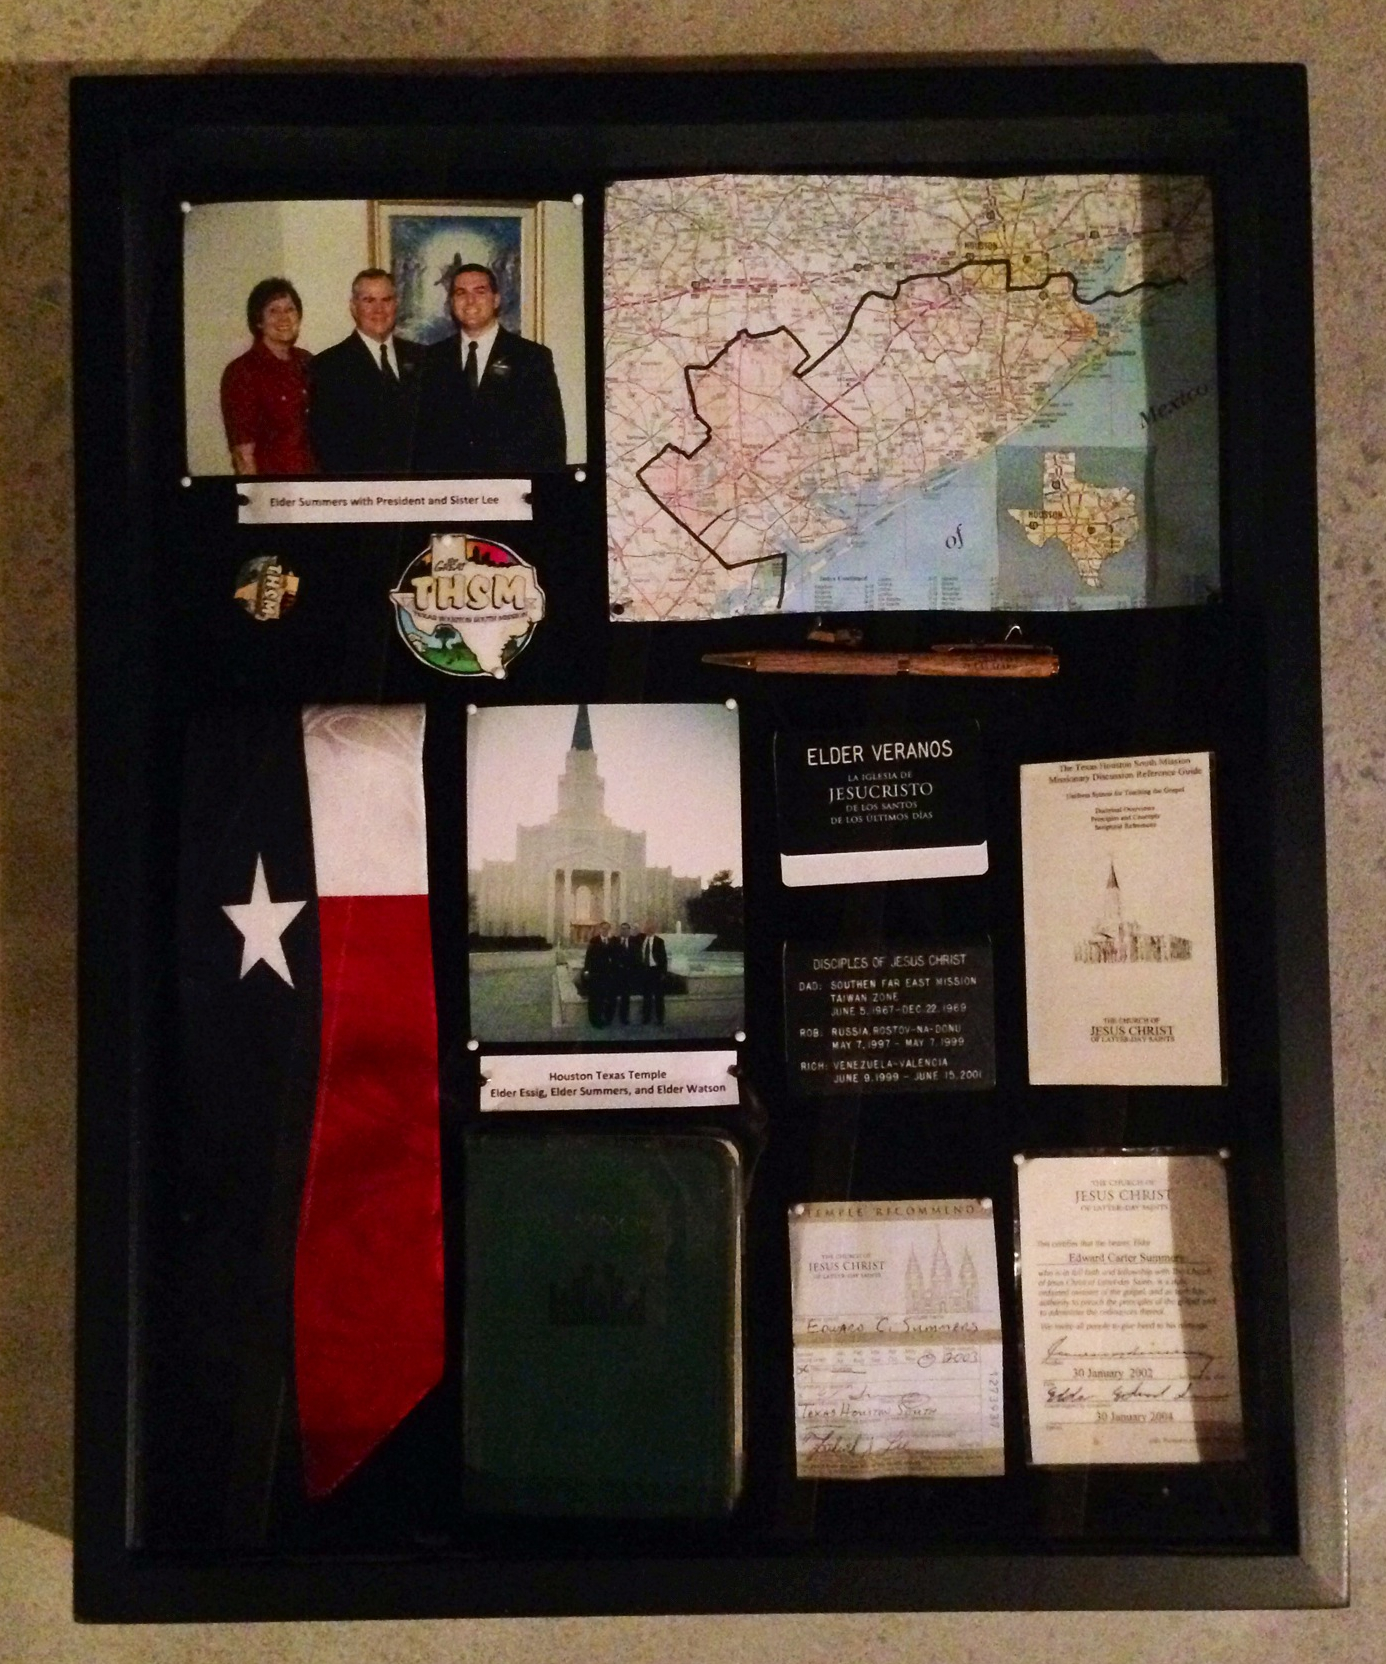 Shadow Box - My Mission